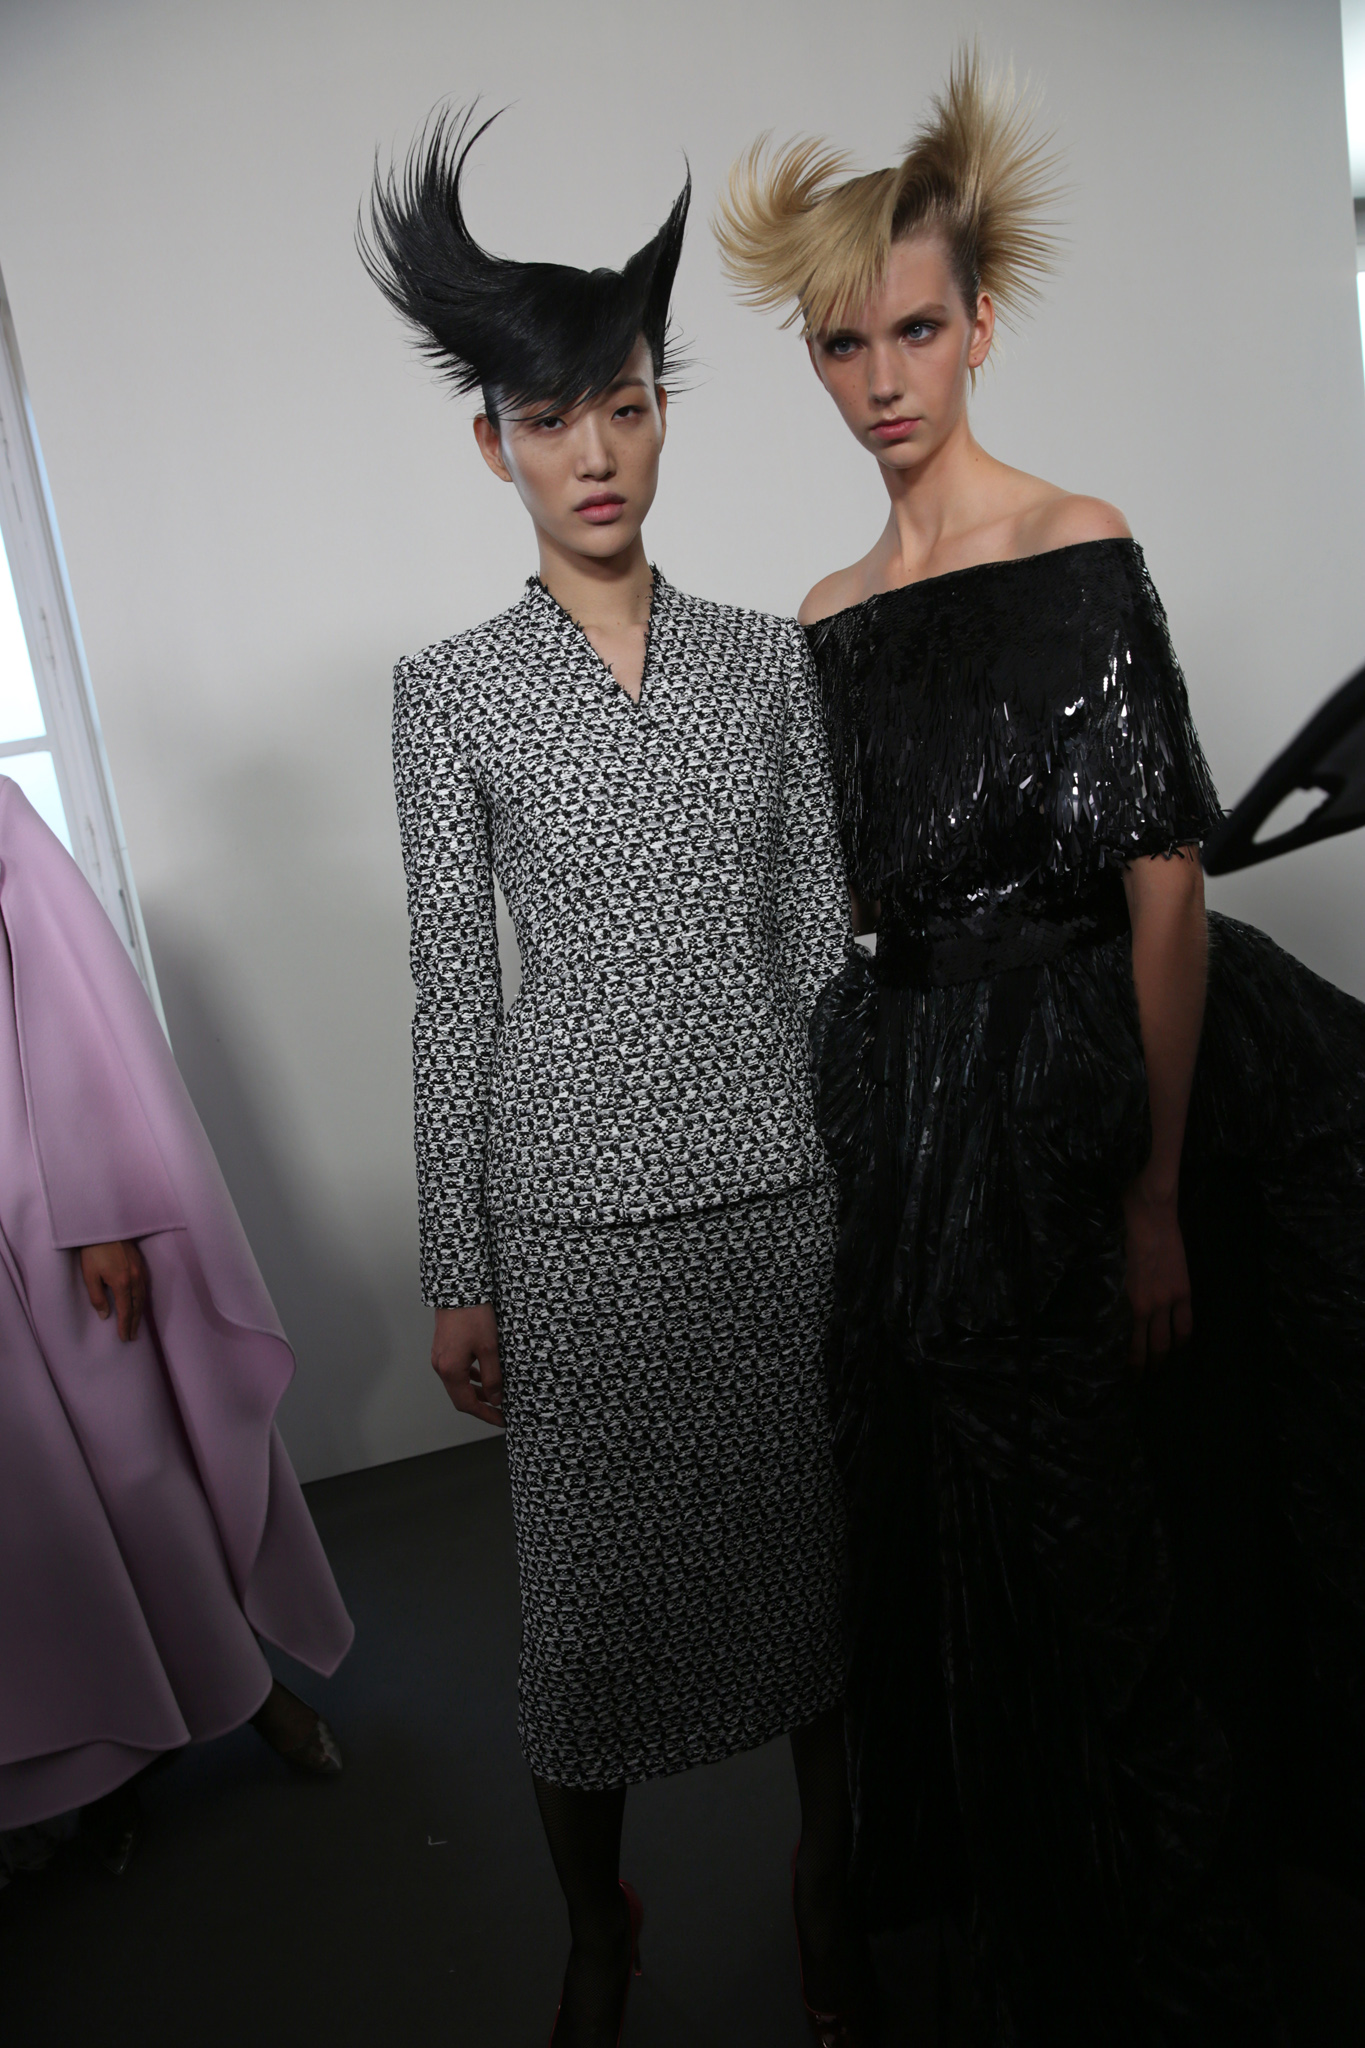 Backstage at Givenchy Couture Fall 2019